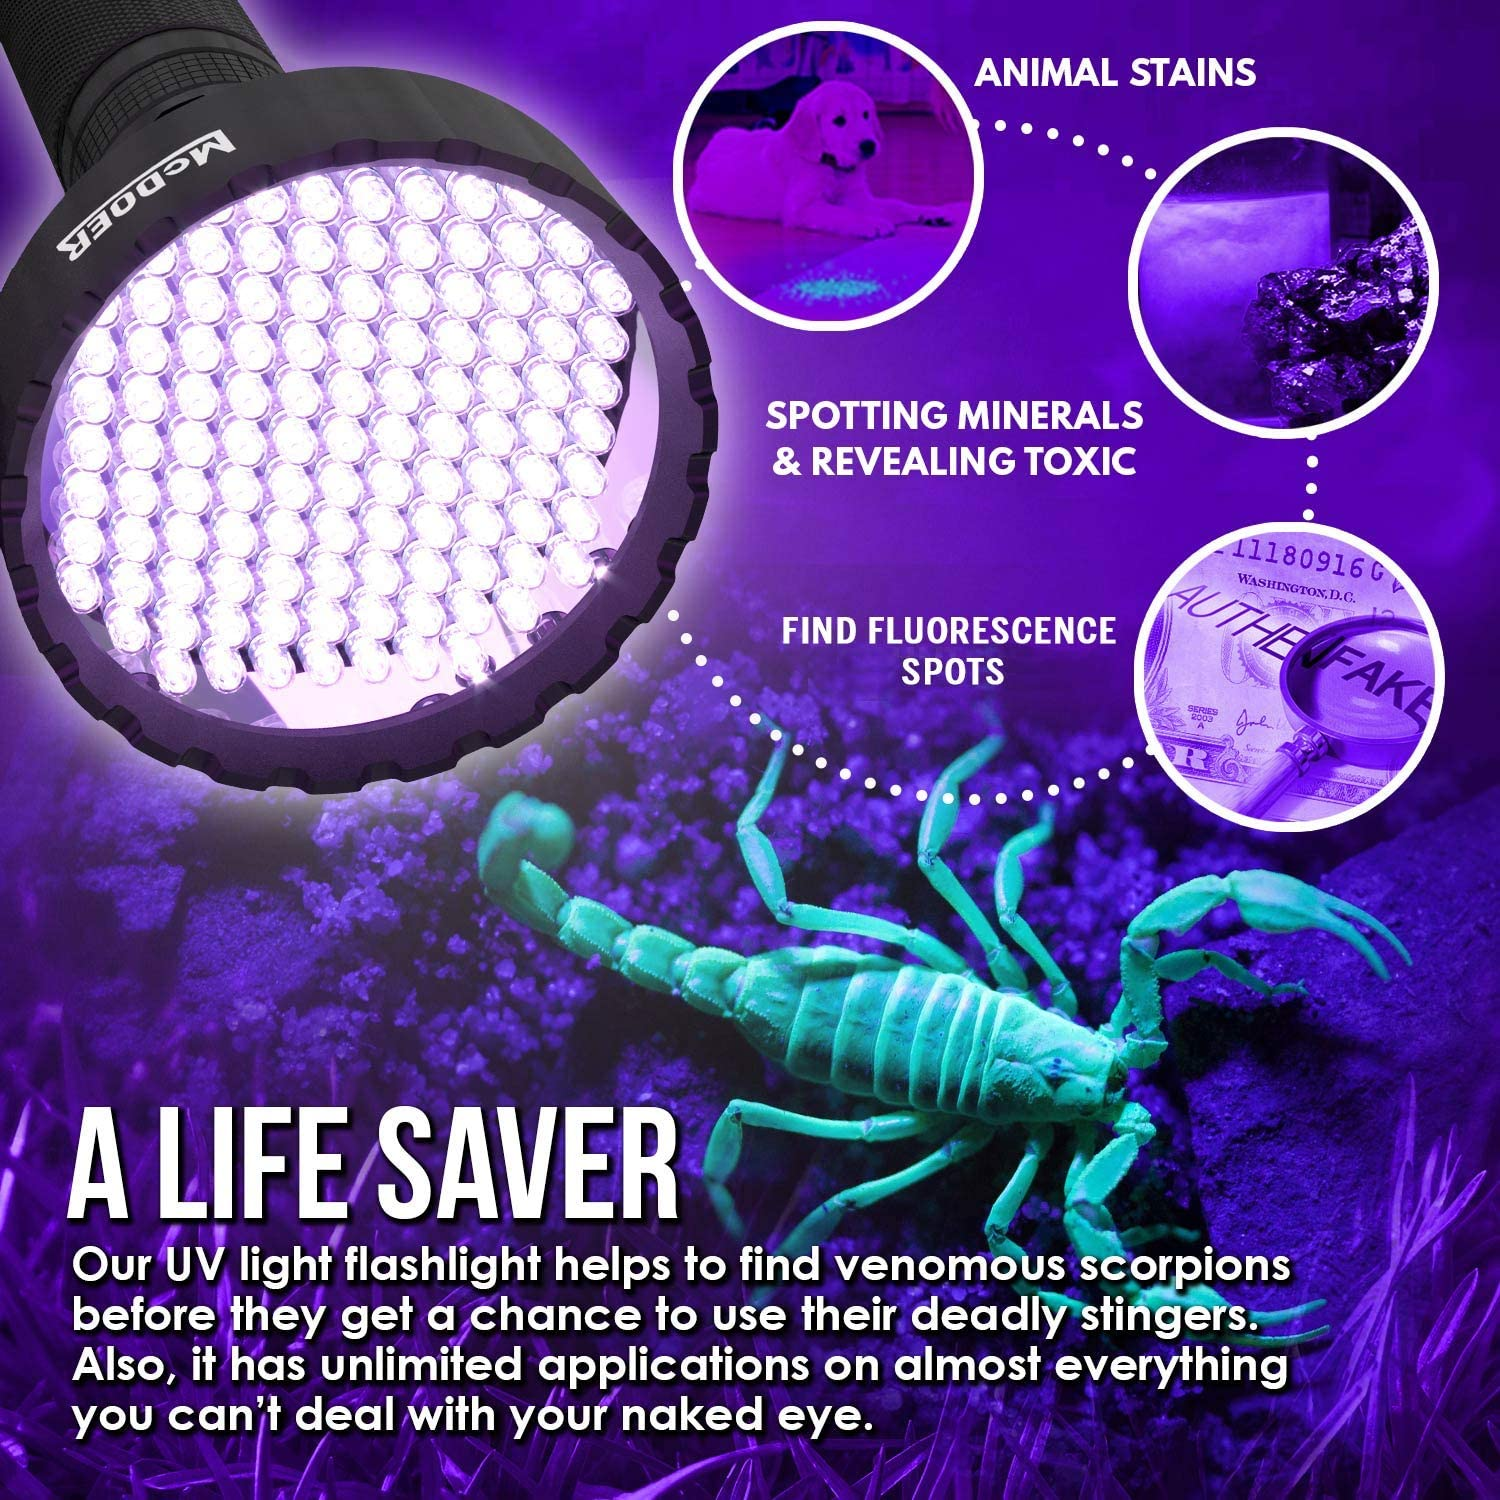 Amazon.com: McDOER - Linterna de luz negra Ver 2 UV 109 LED ...